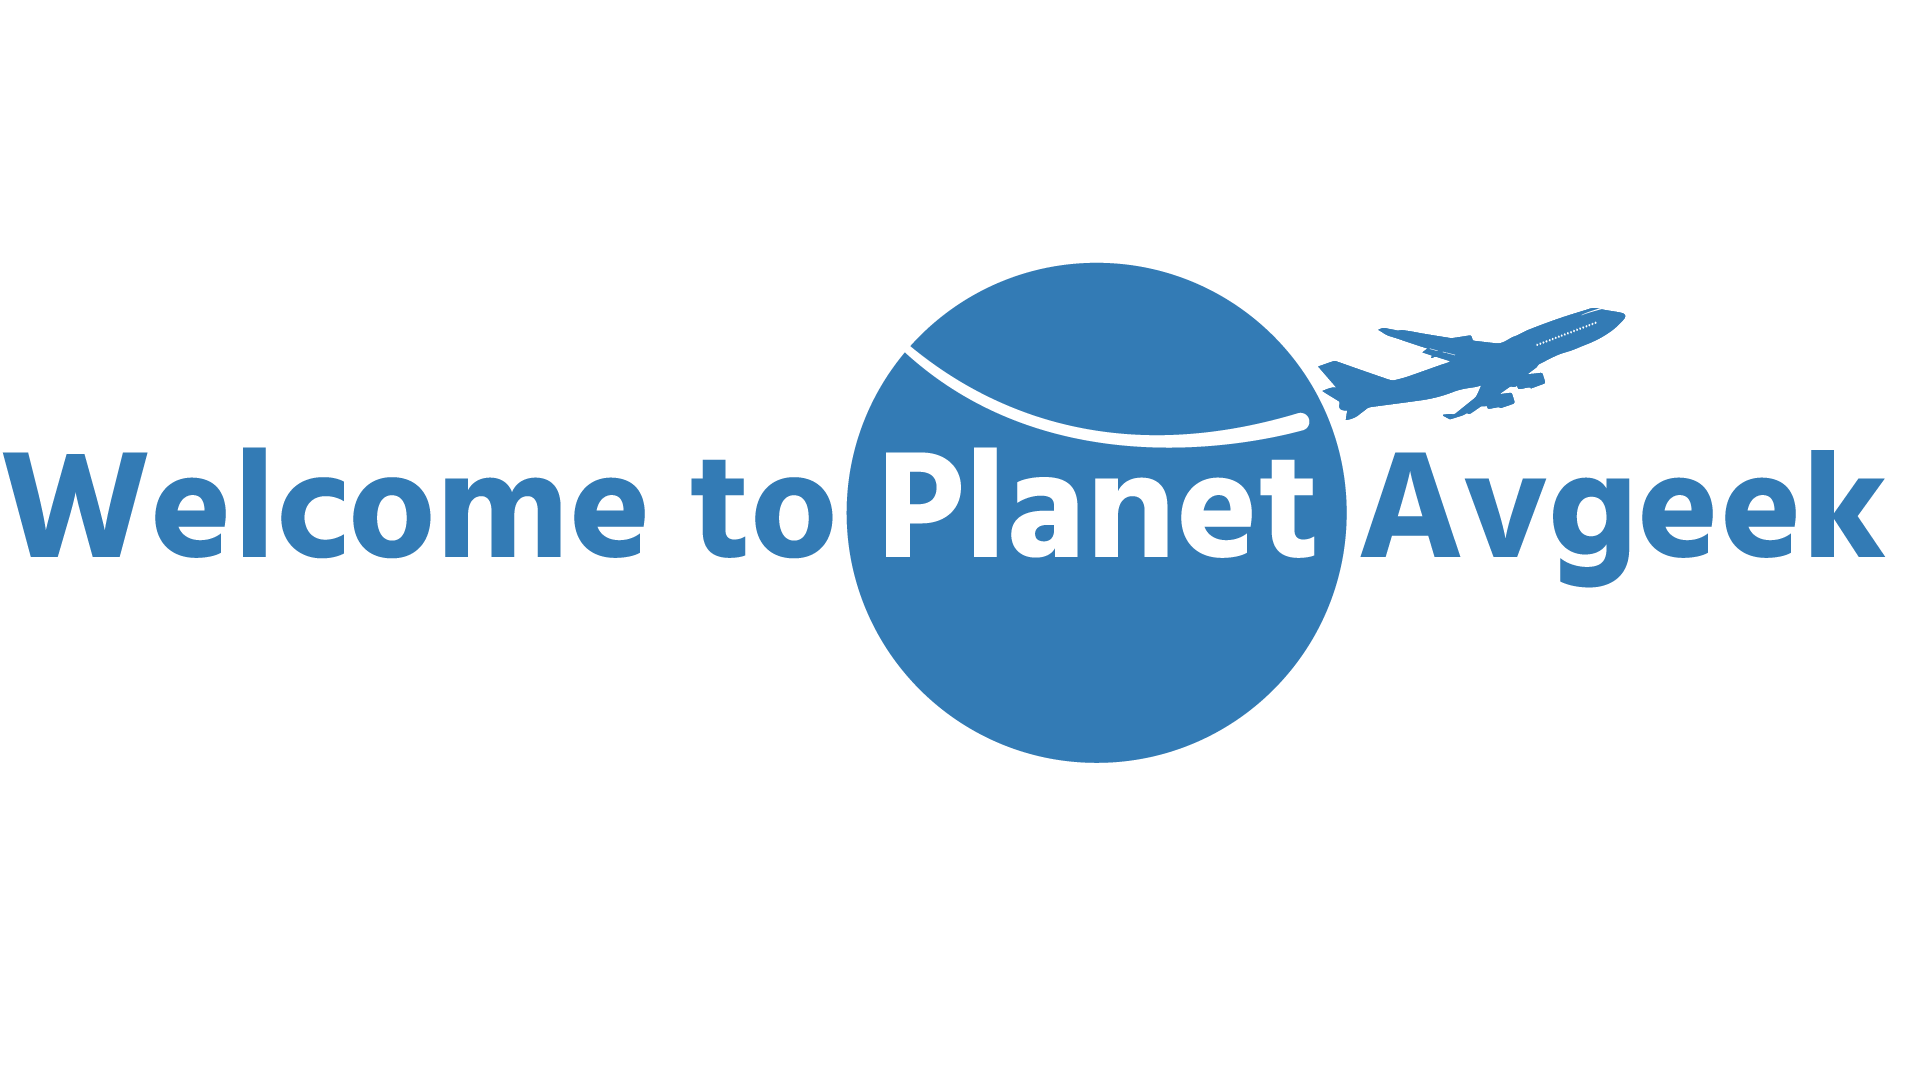 Welcome to Planet Avgeek